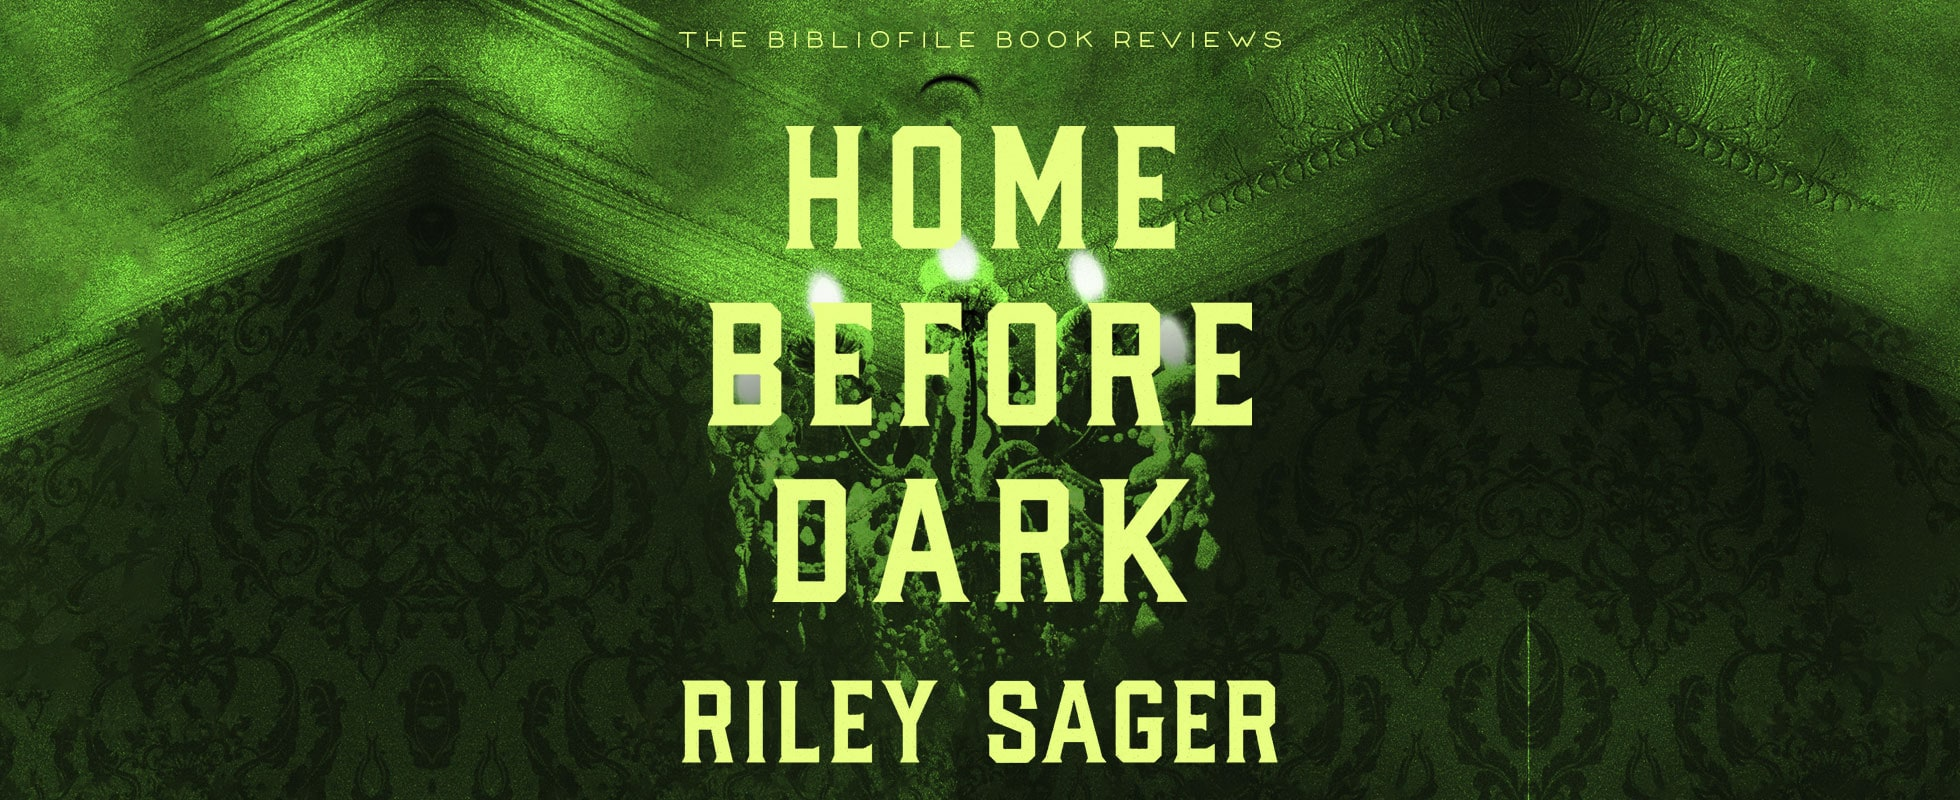 Home Before Dark by Riley Sager book review plot summary synopsis explanation ending spoilers